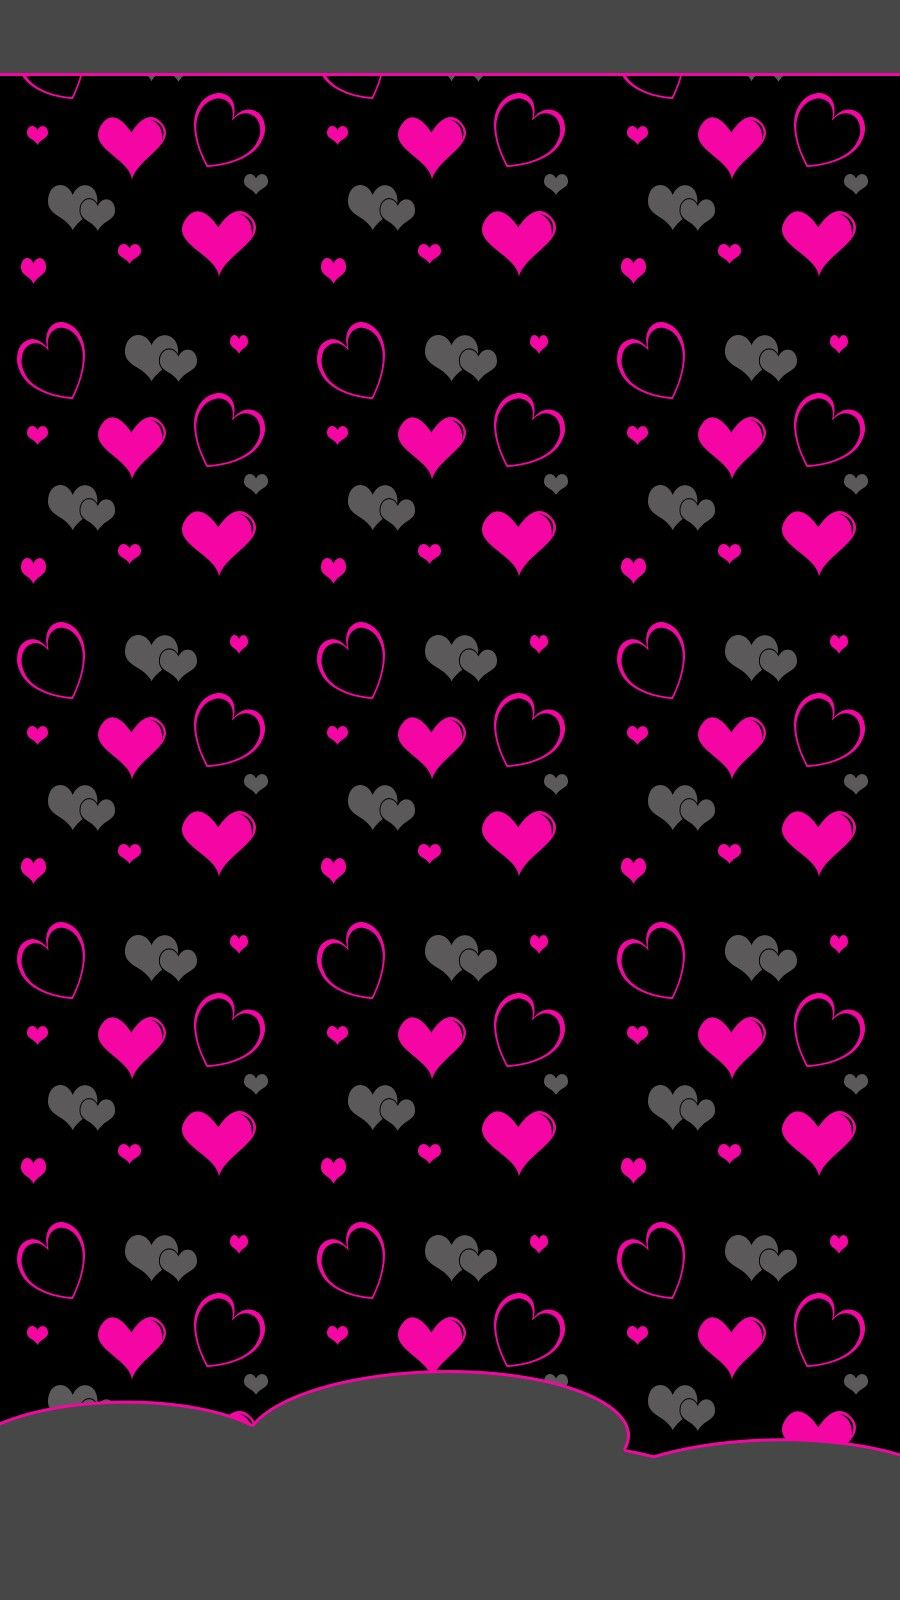 Pink And Black Hearts Heart Wallpaper Valentines Wallpaper Black Wallpaper